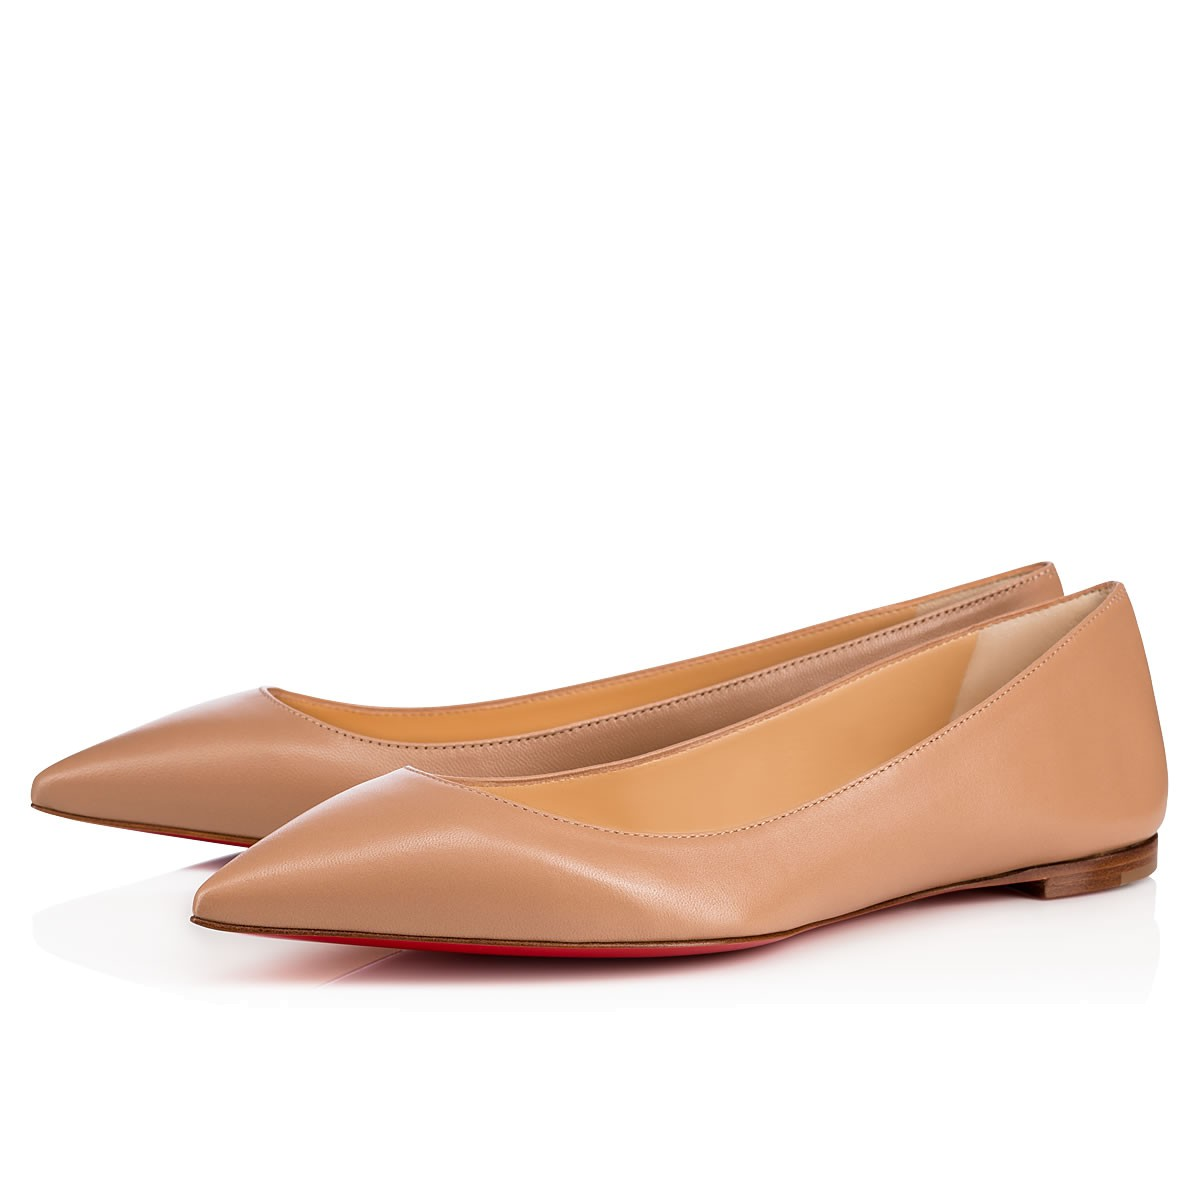 Shoes - Ballalla Flat - Christian Louboutin